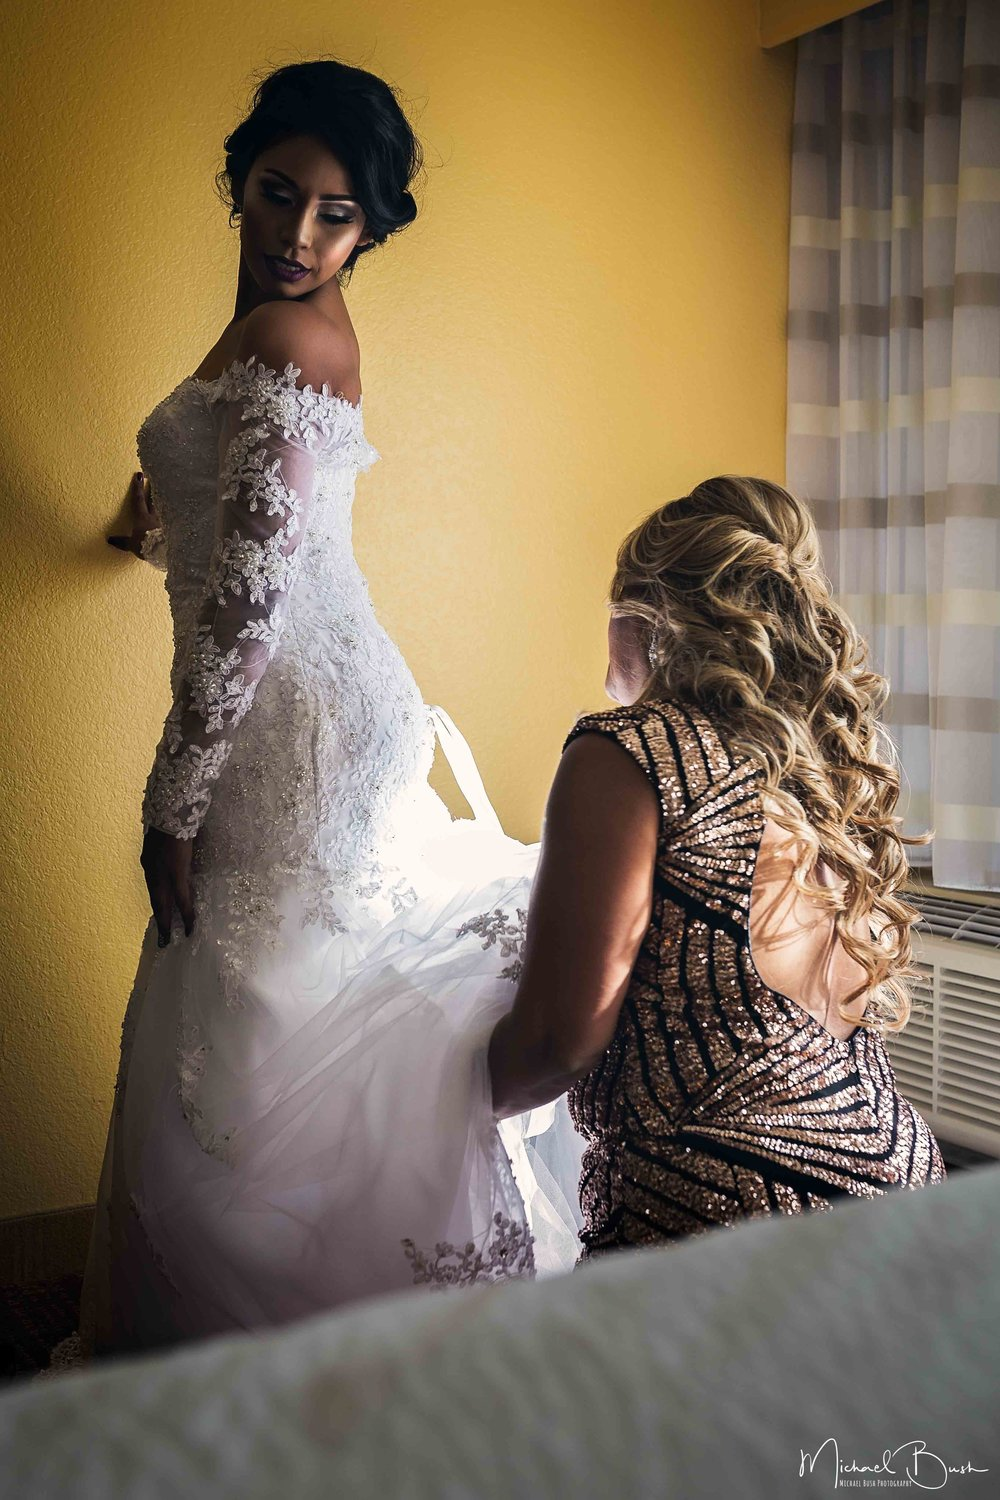 Wedding-Details-Bride-Fort Worth-colors-Getting Ready-MUA-brides-motherofbride-mother-weddingdress.jpg